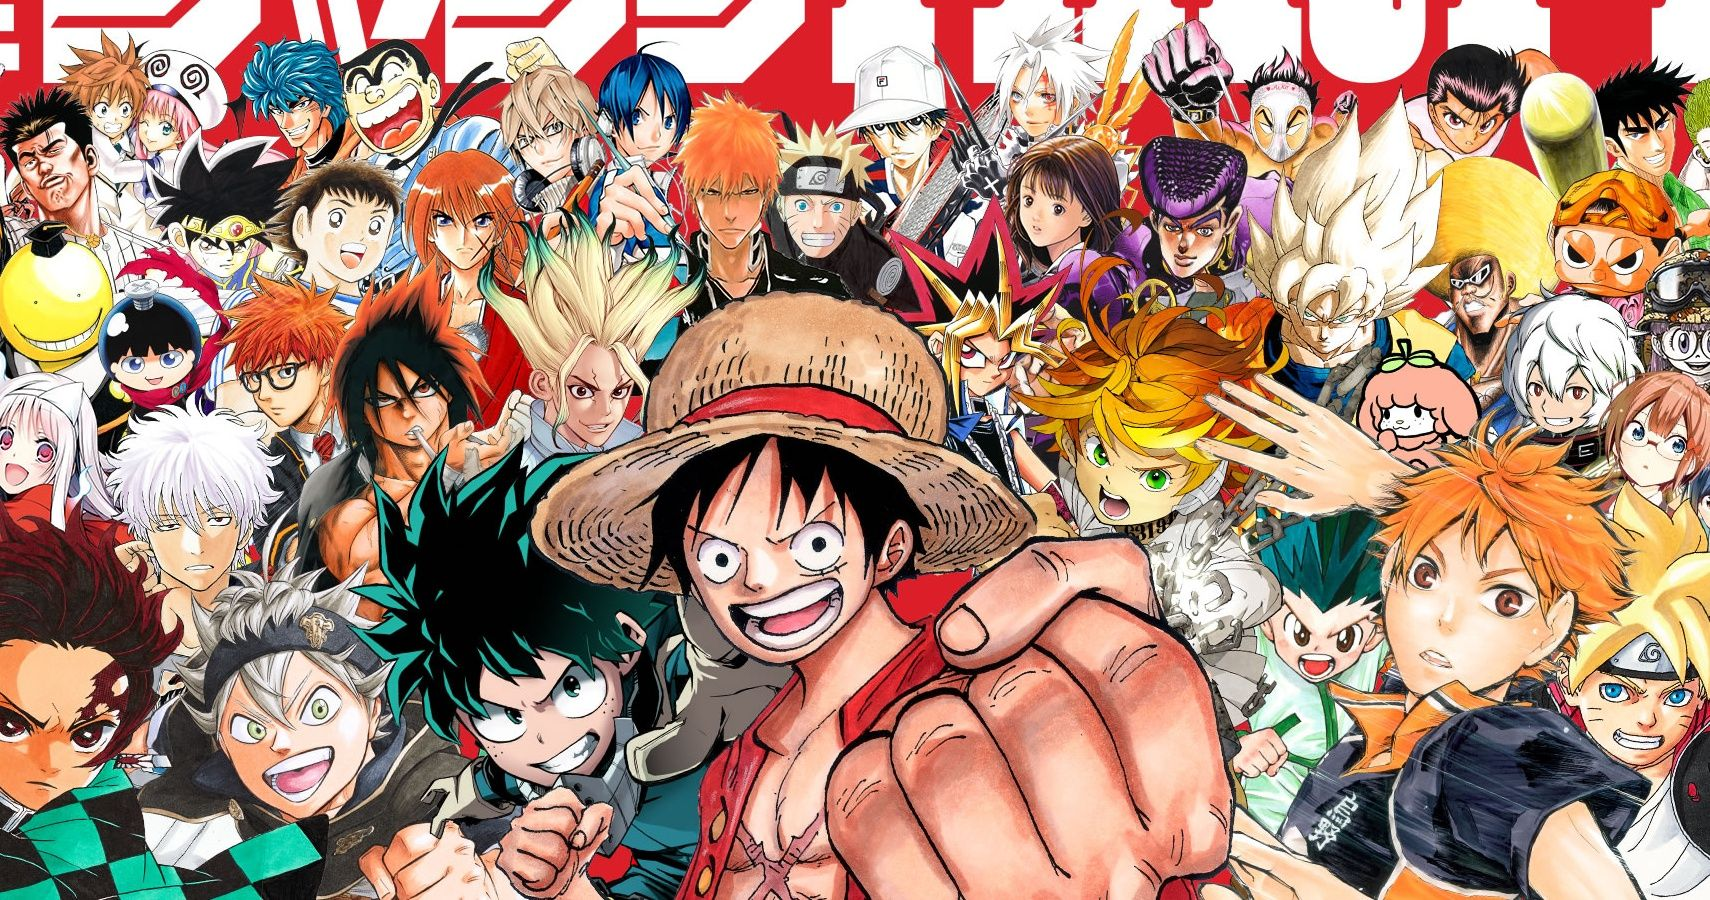 5 Things Wrong With Shonen Jump Anime 5 Things They Do Better Than Anyone Else